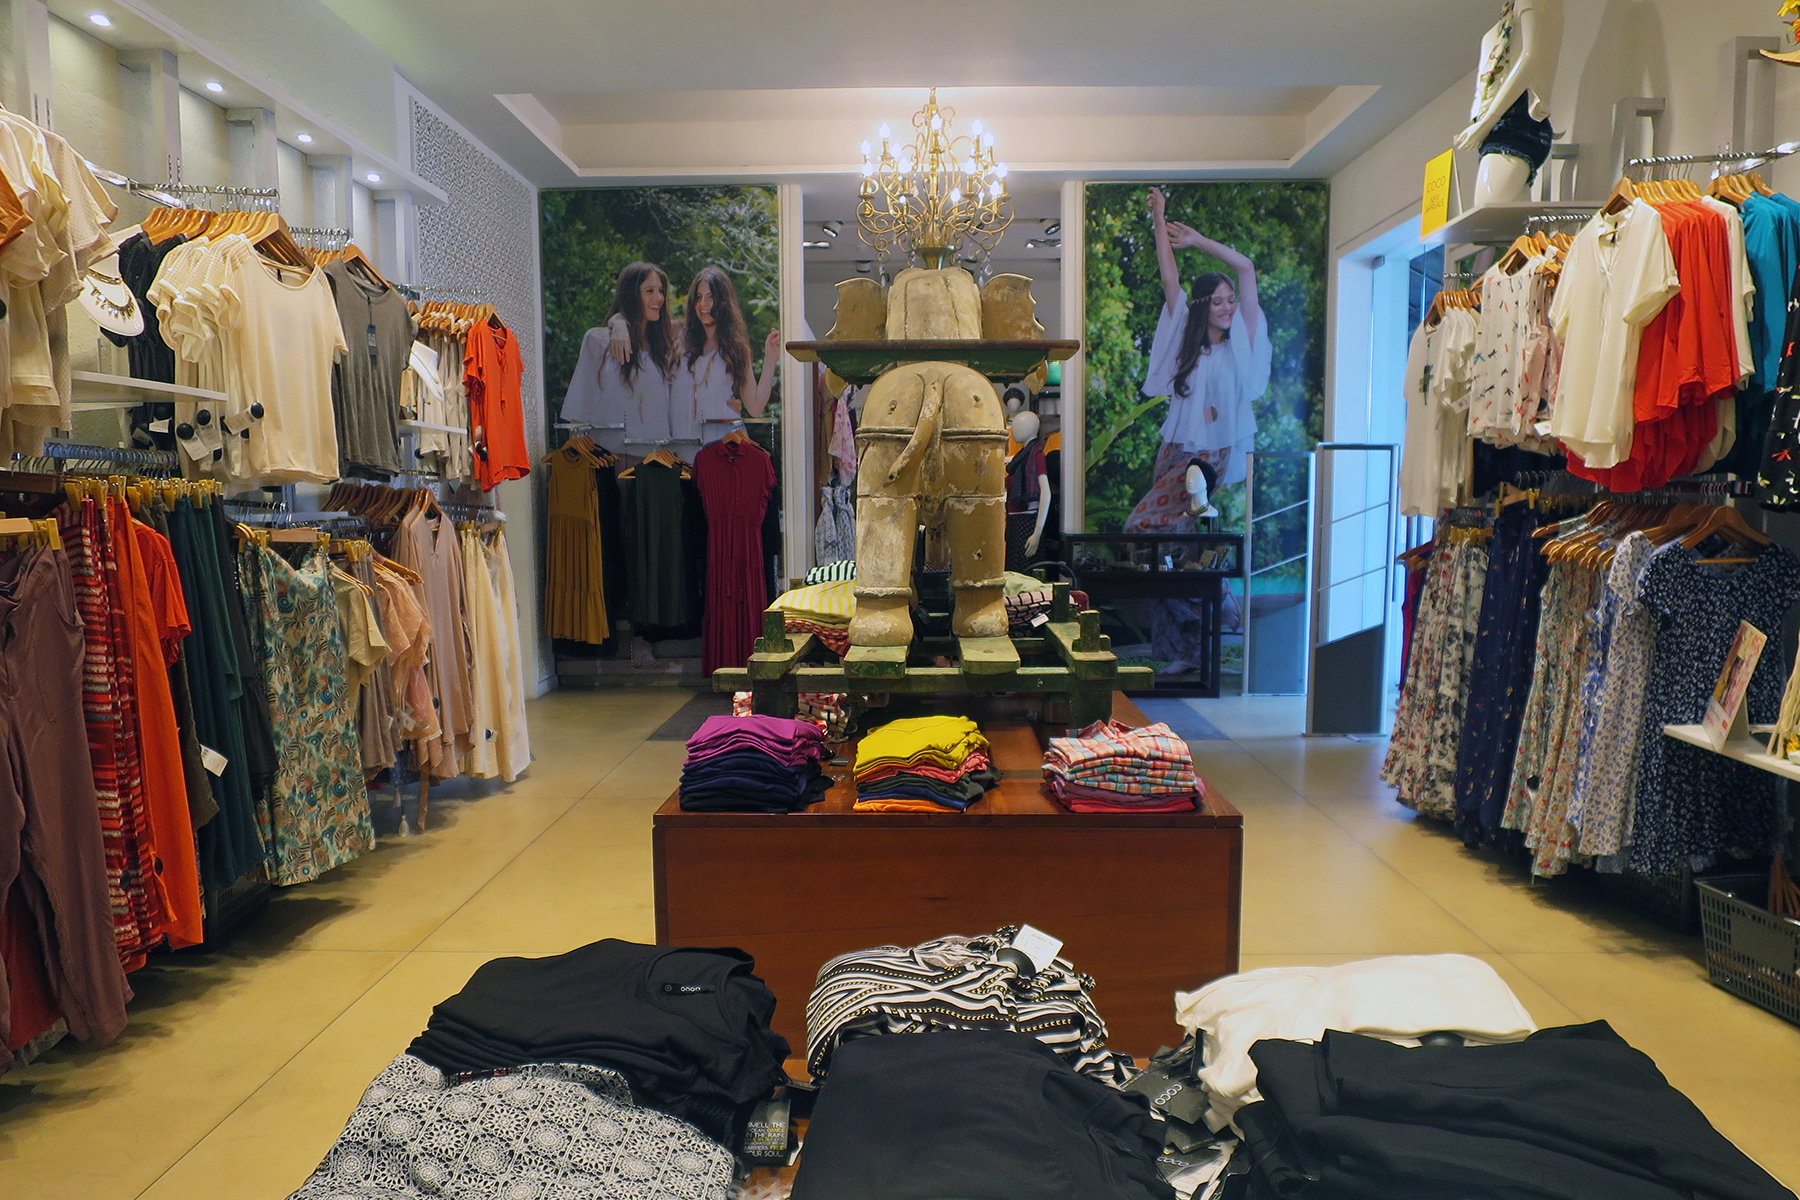 Shopping-Guide Colombo: Der lässige Lifestyle in Sri Lankas Metropole Colombo